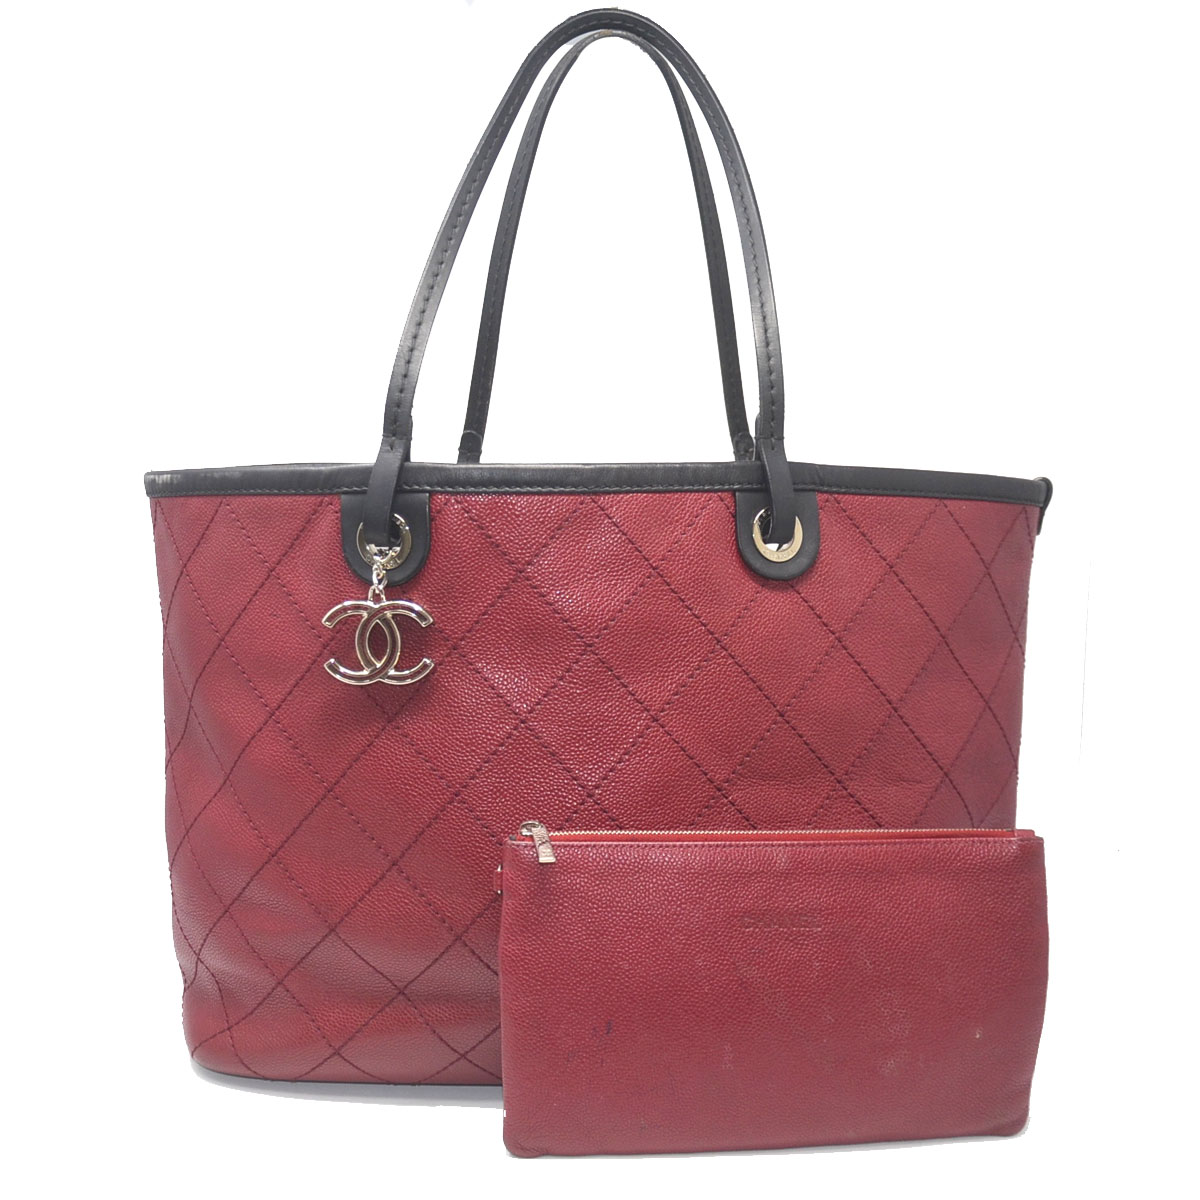 chanel tote red